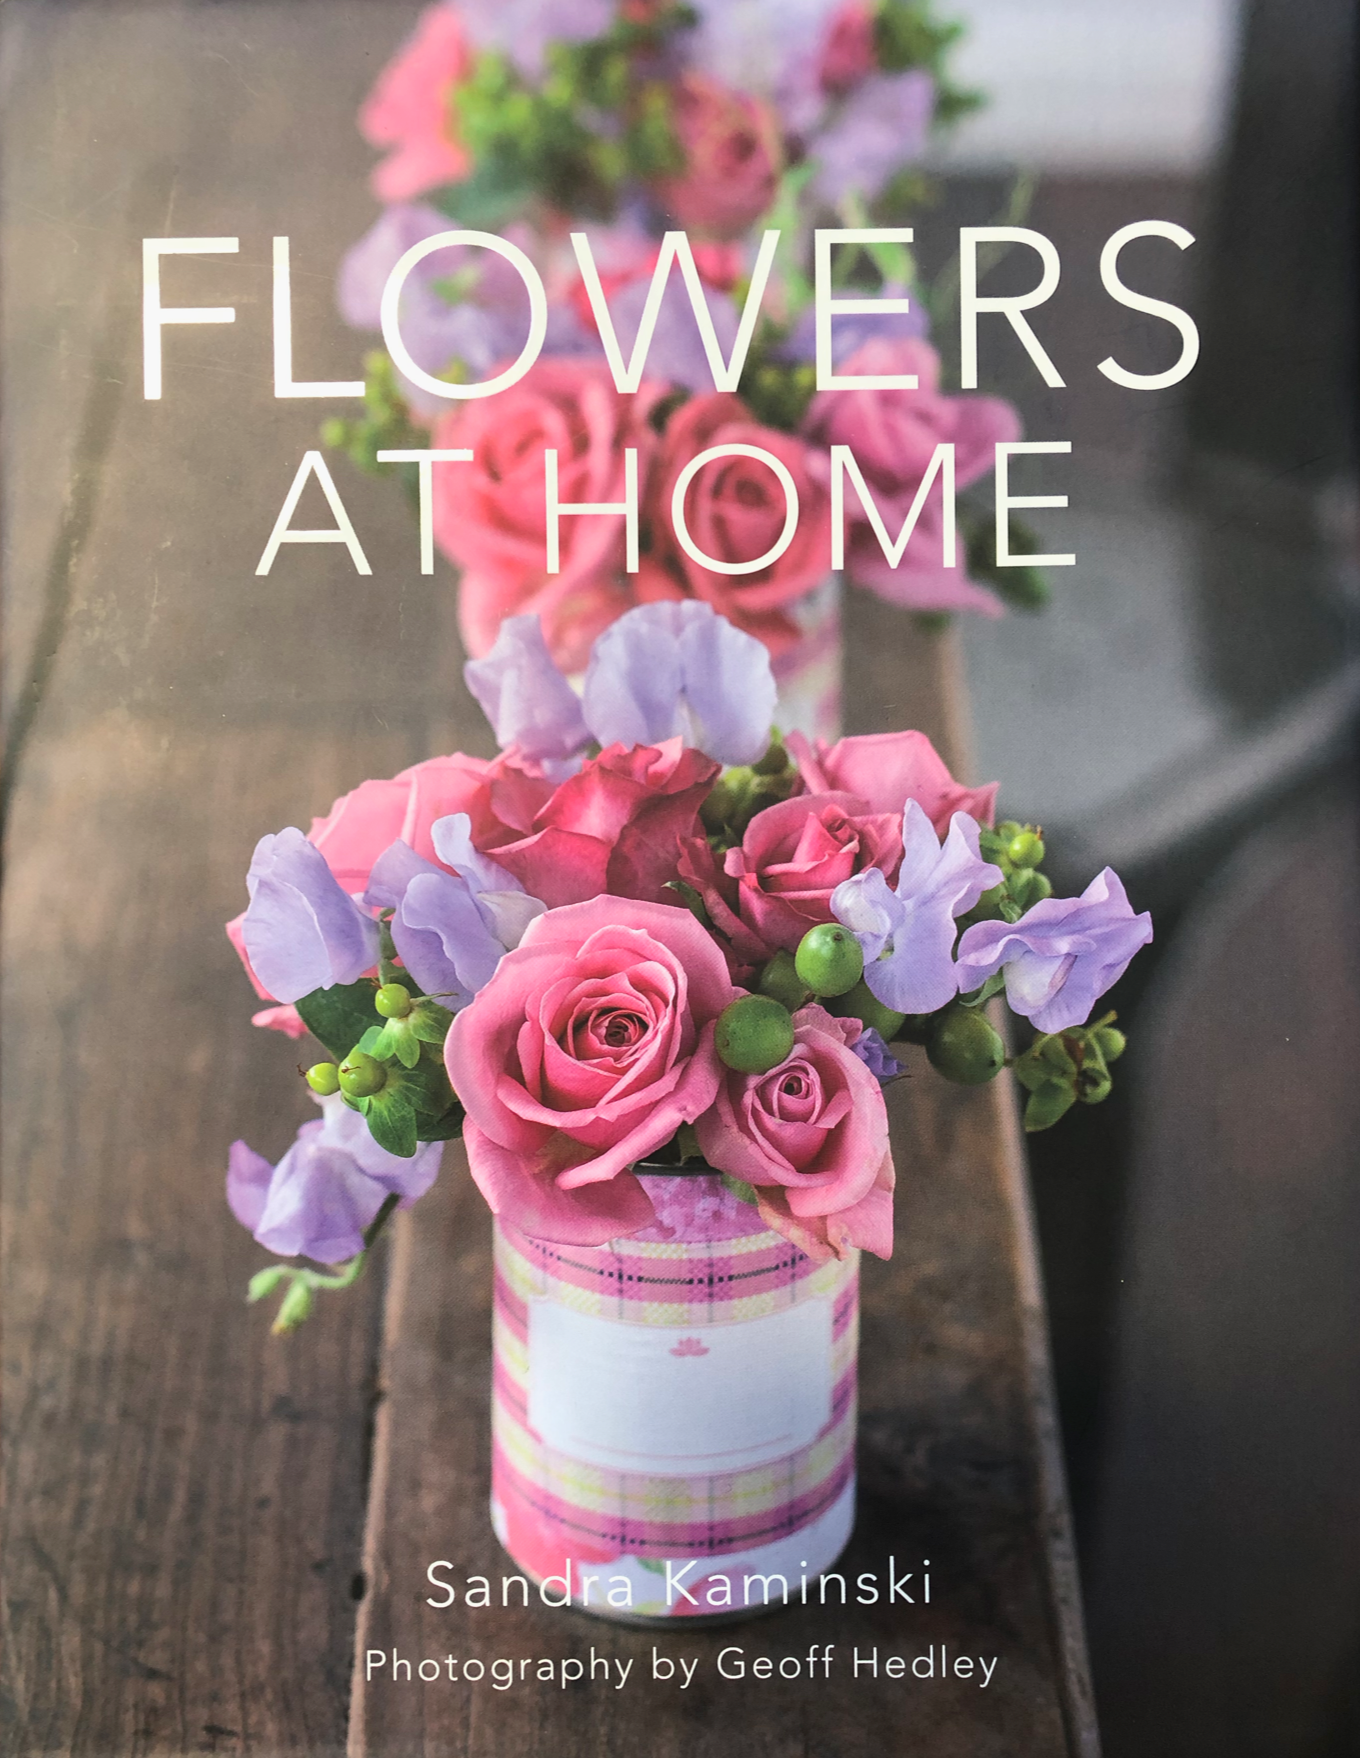 flowers-at-home-cover.png